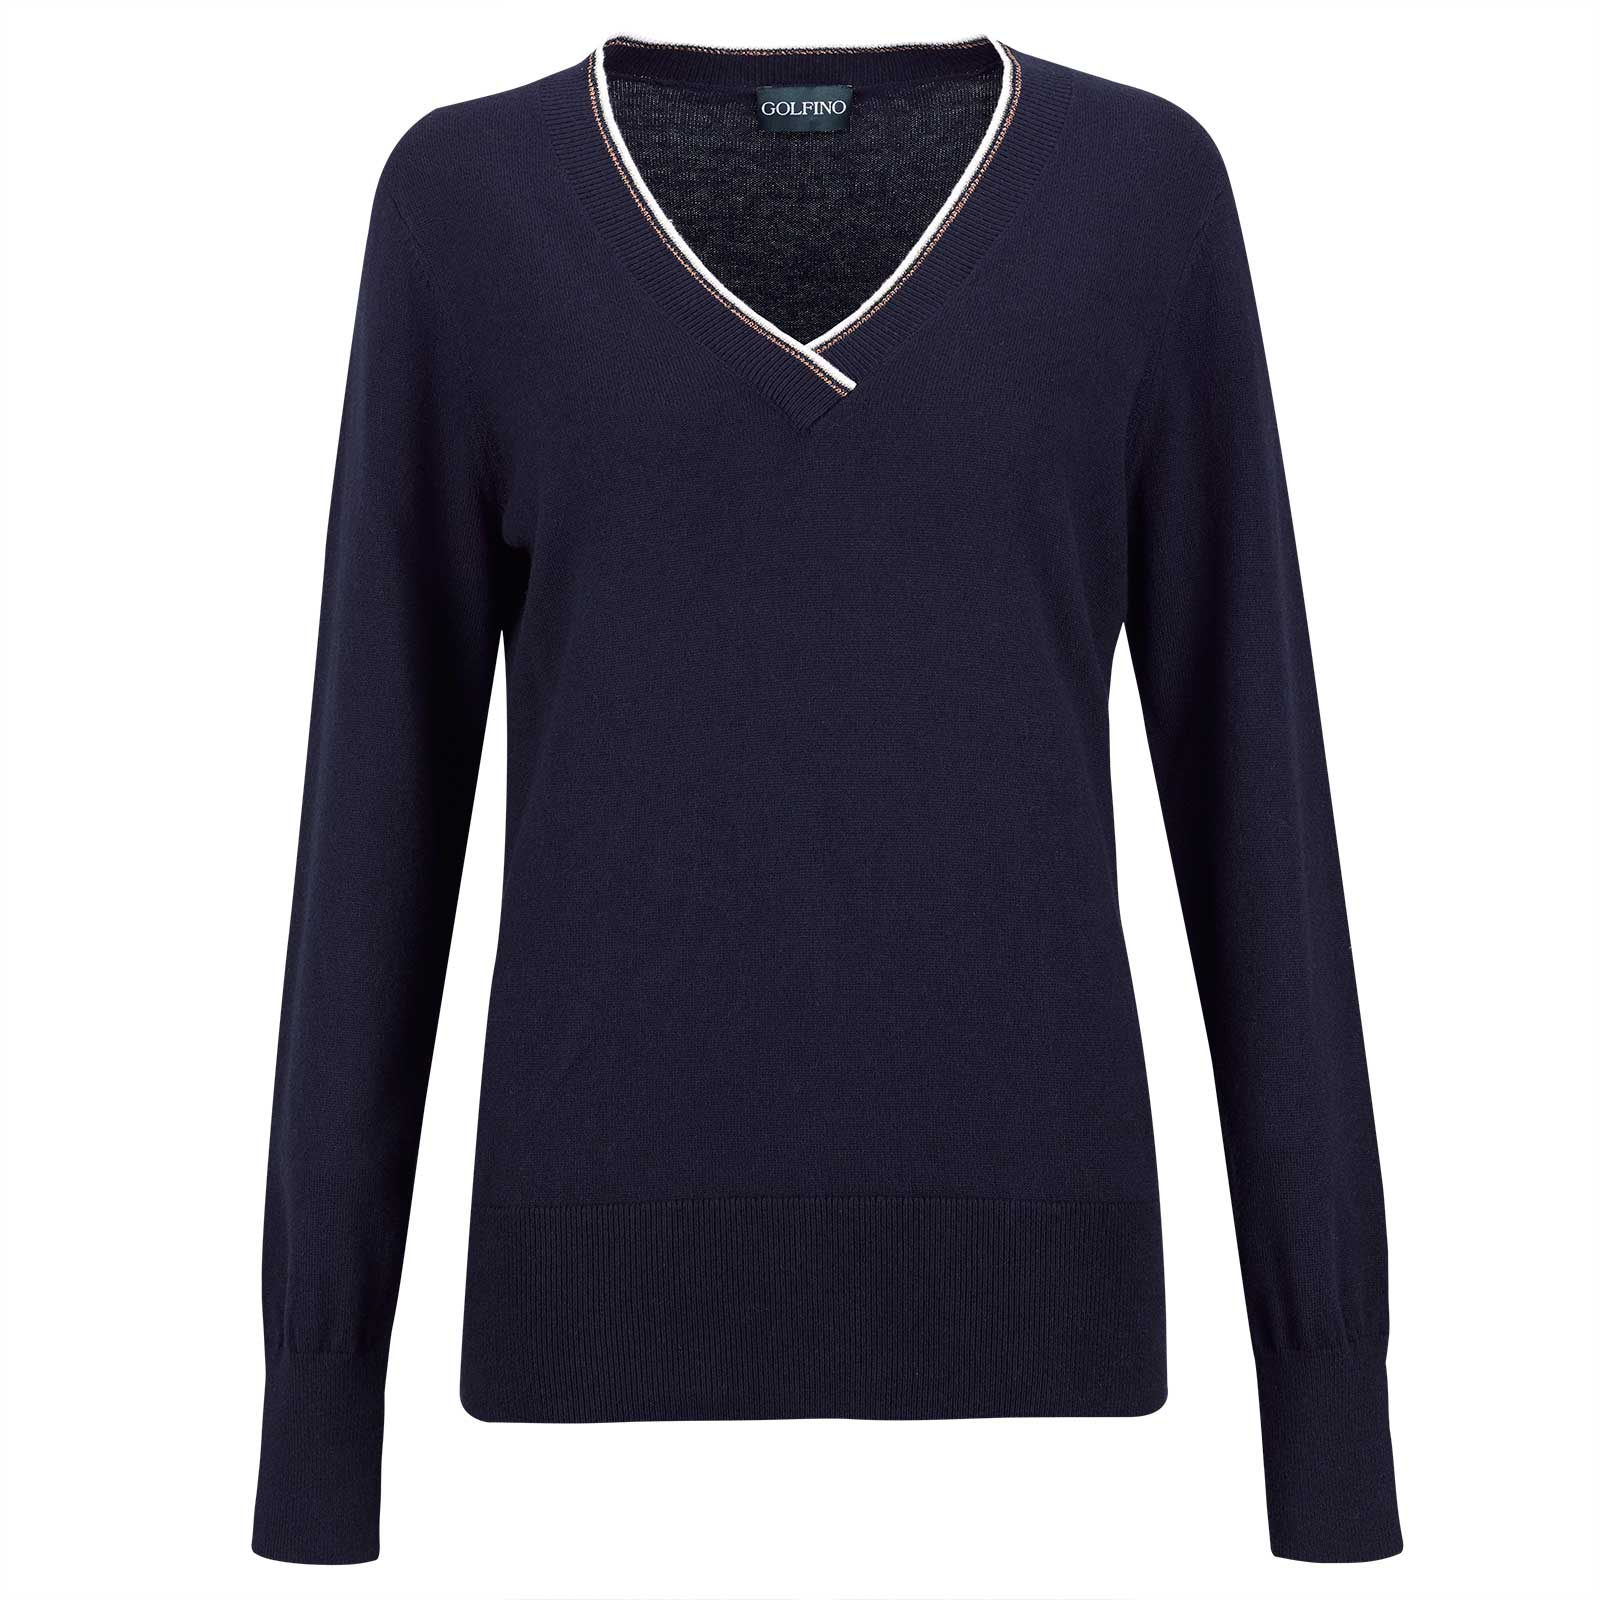 Ladies' V-neck knitted sweater made from soft cotton with cashmere